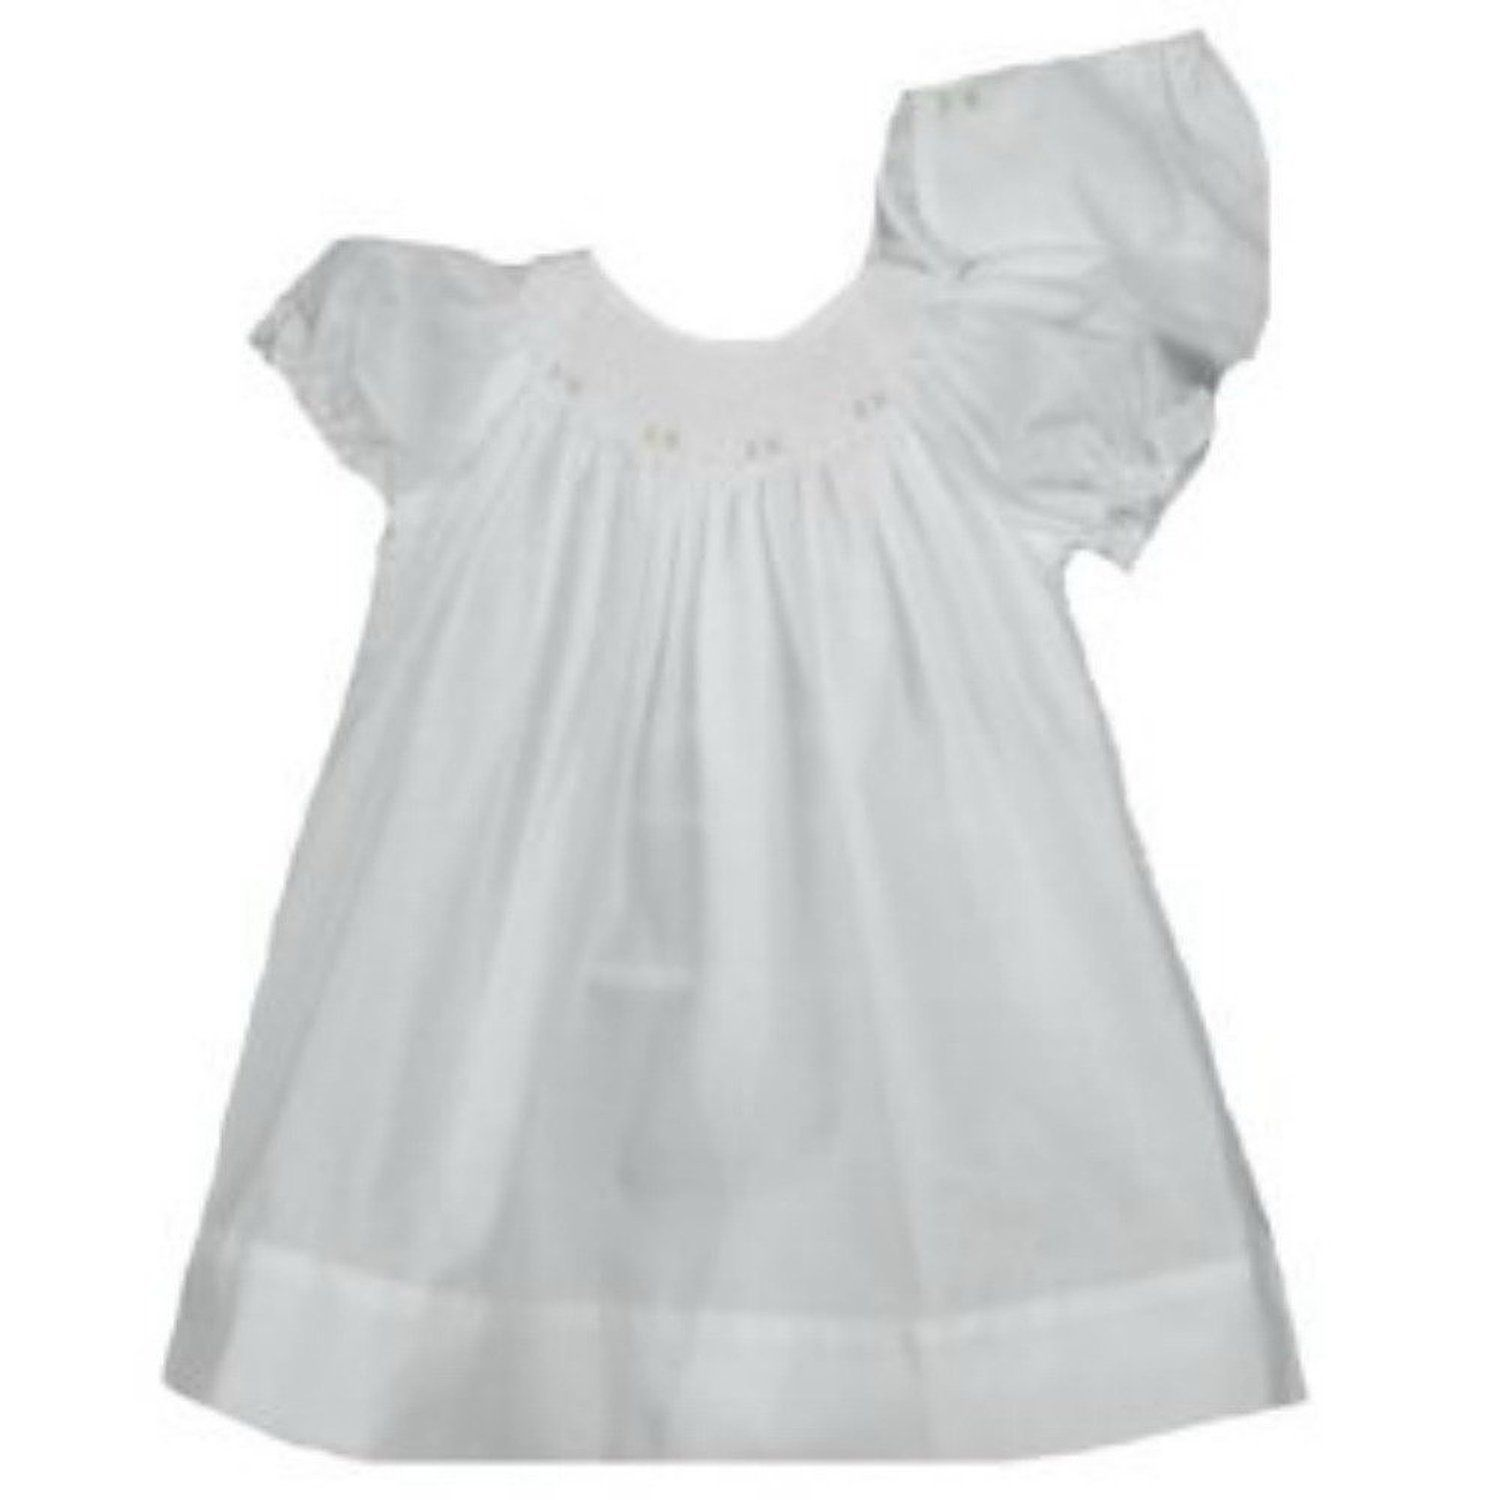 Amazon.com: Petit Ami Baby Girl White Smocked Gown with Bonnet: Clothing